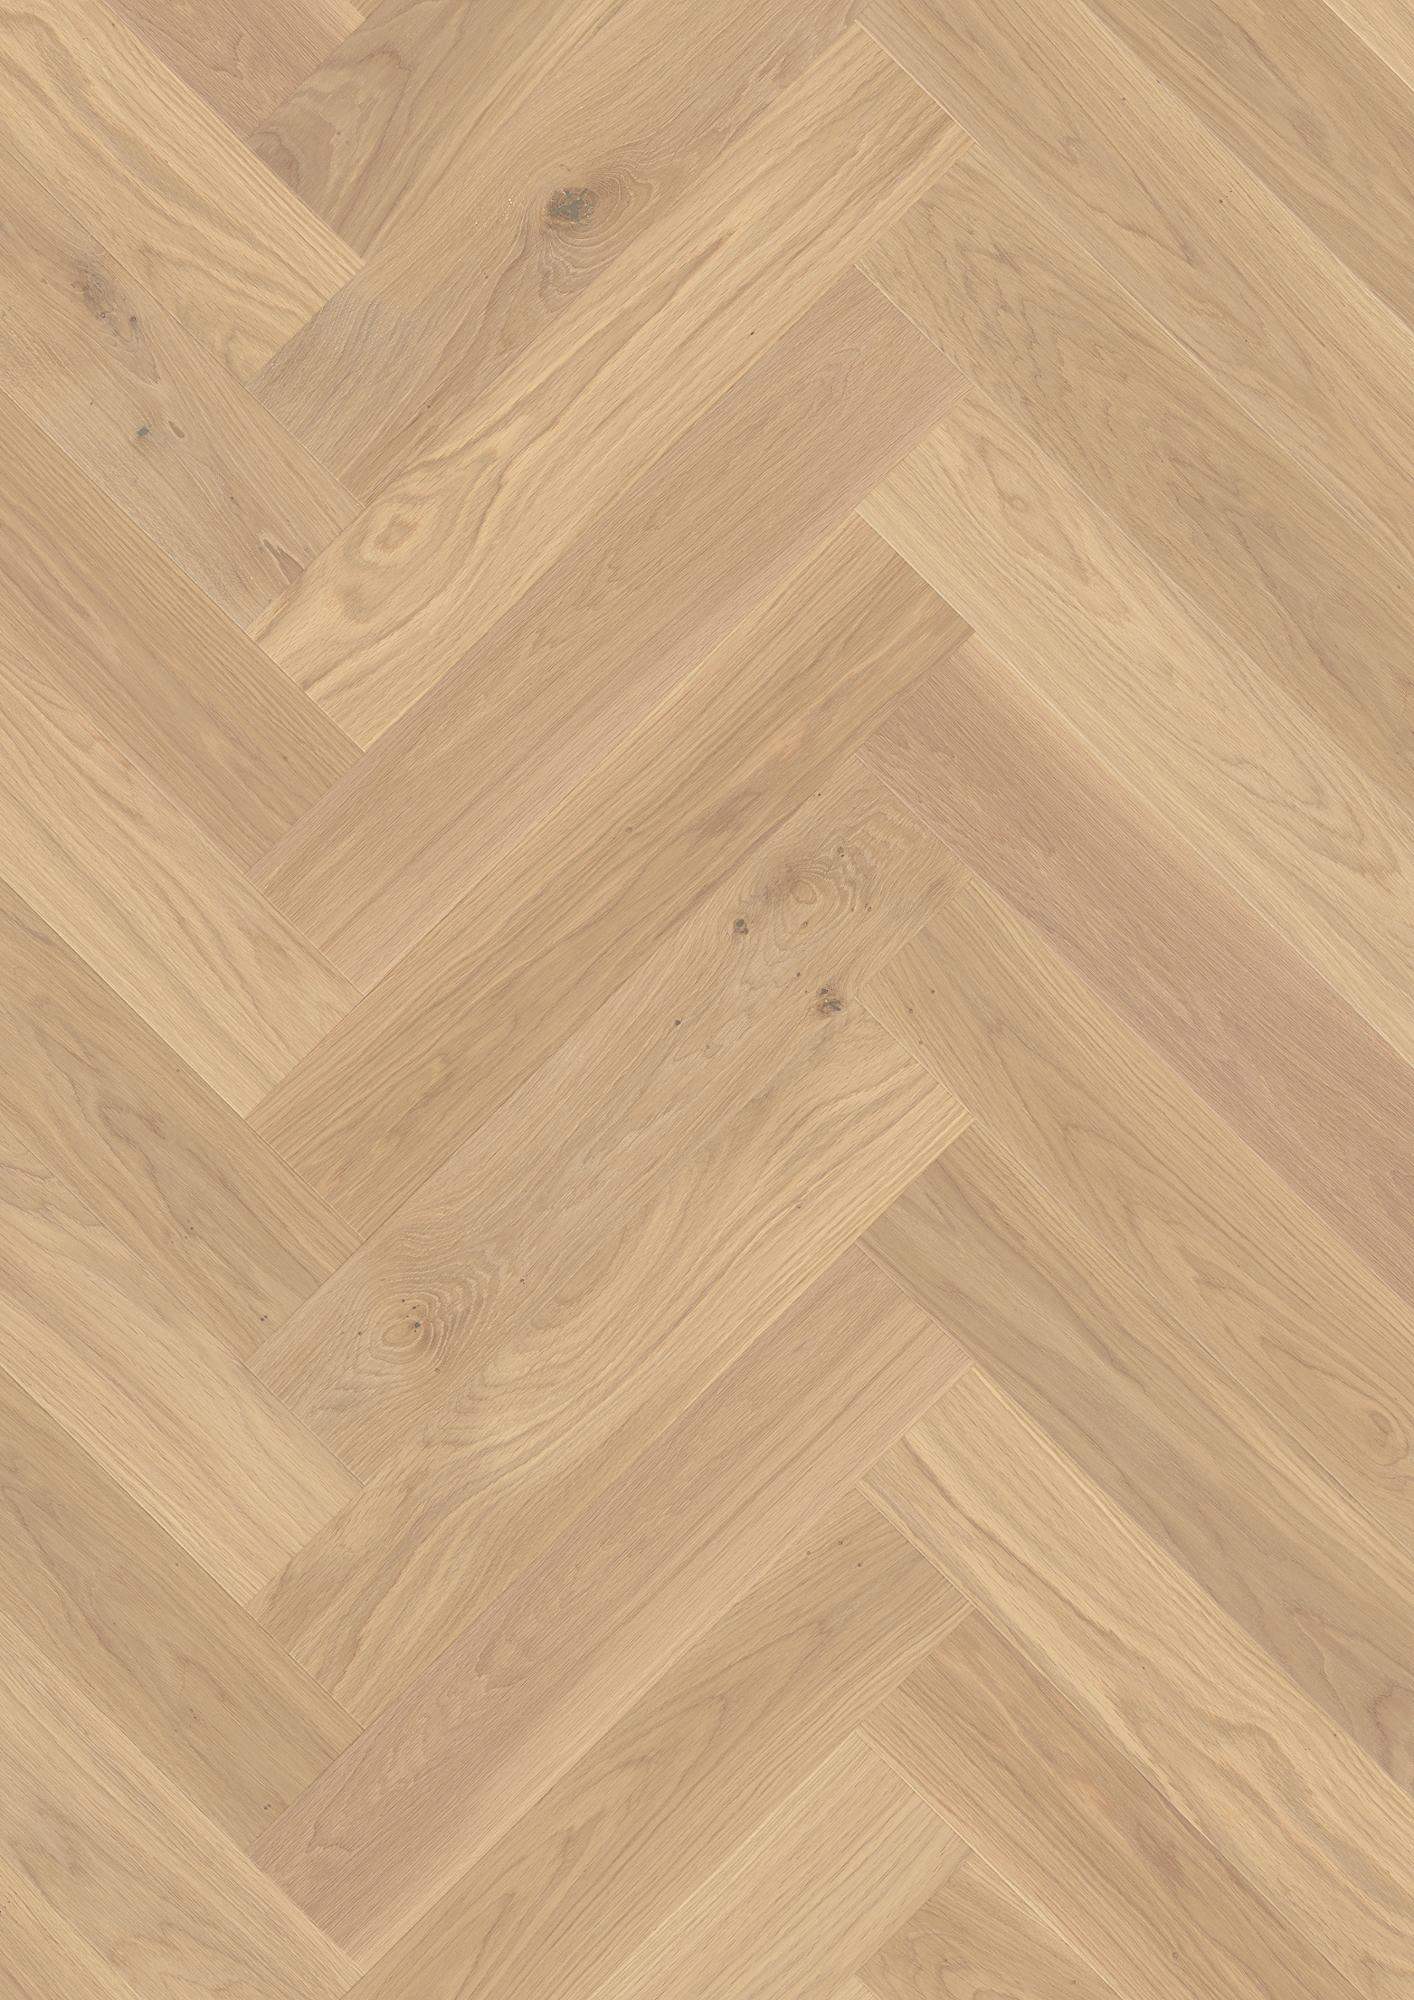 Oak Adagio white, Live Natural oil white, Brushed, Beveled 4V, Plank Herringbone Click, 14x138x690mm